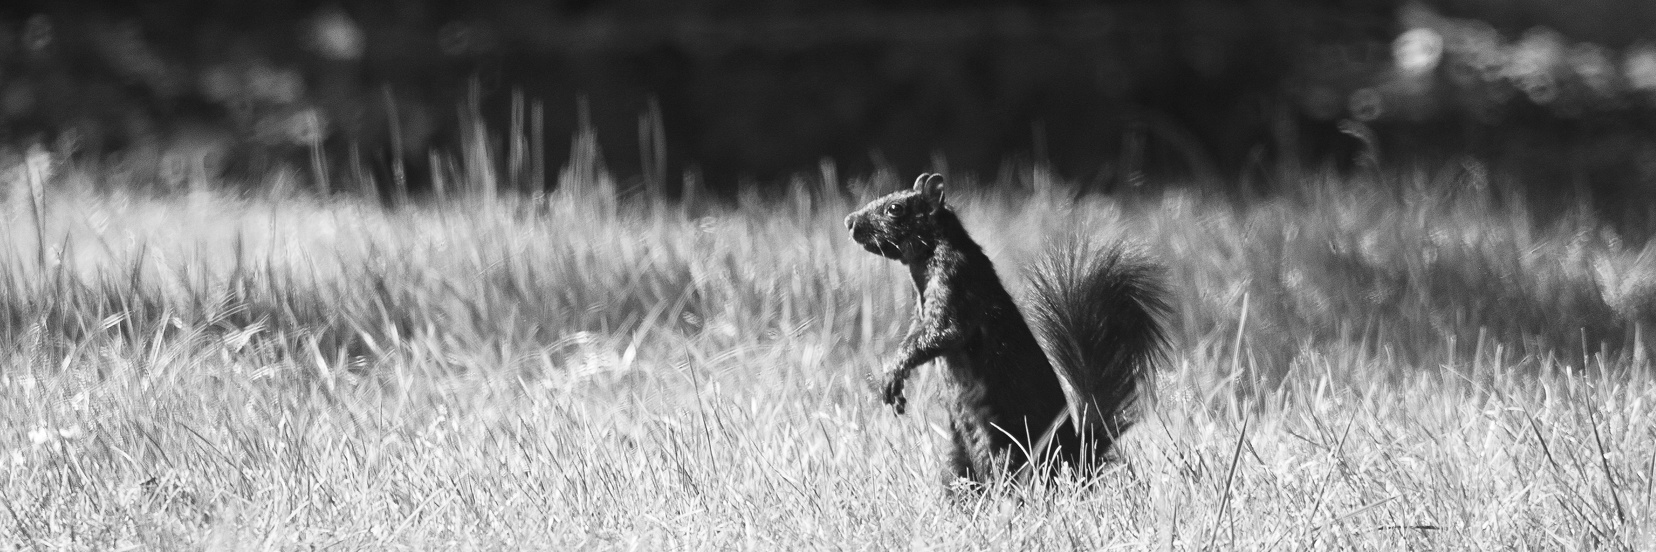 20200501A-IMGP0418-eastern_gray_squirrel-BW.jpg